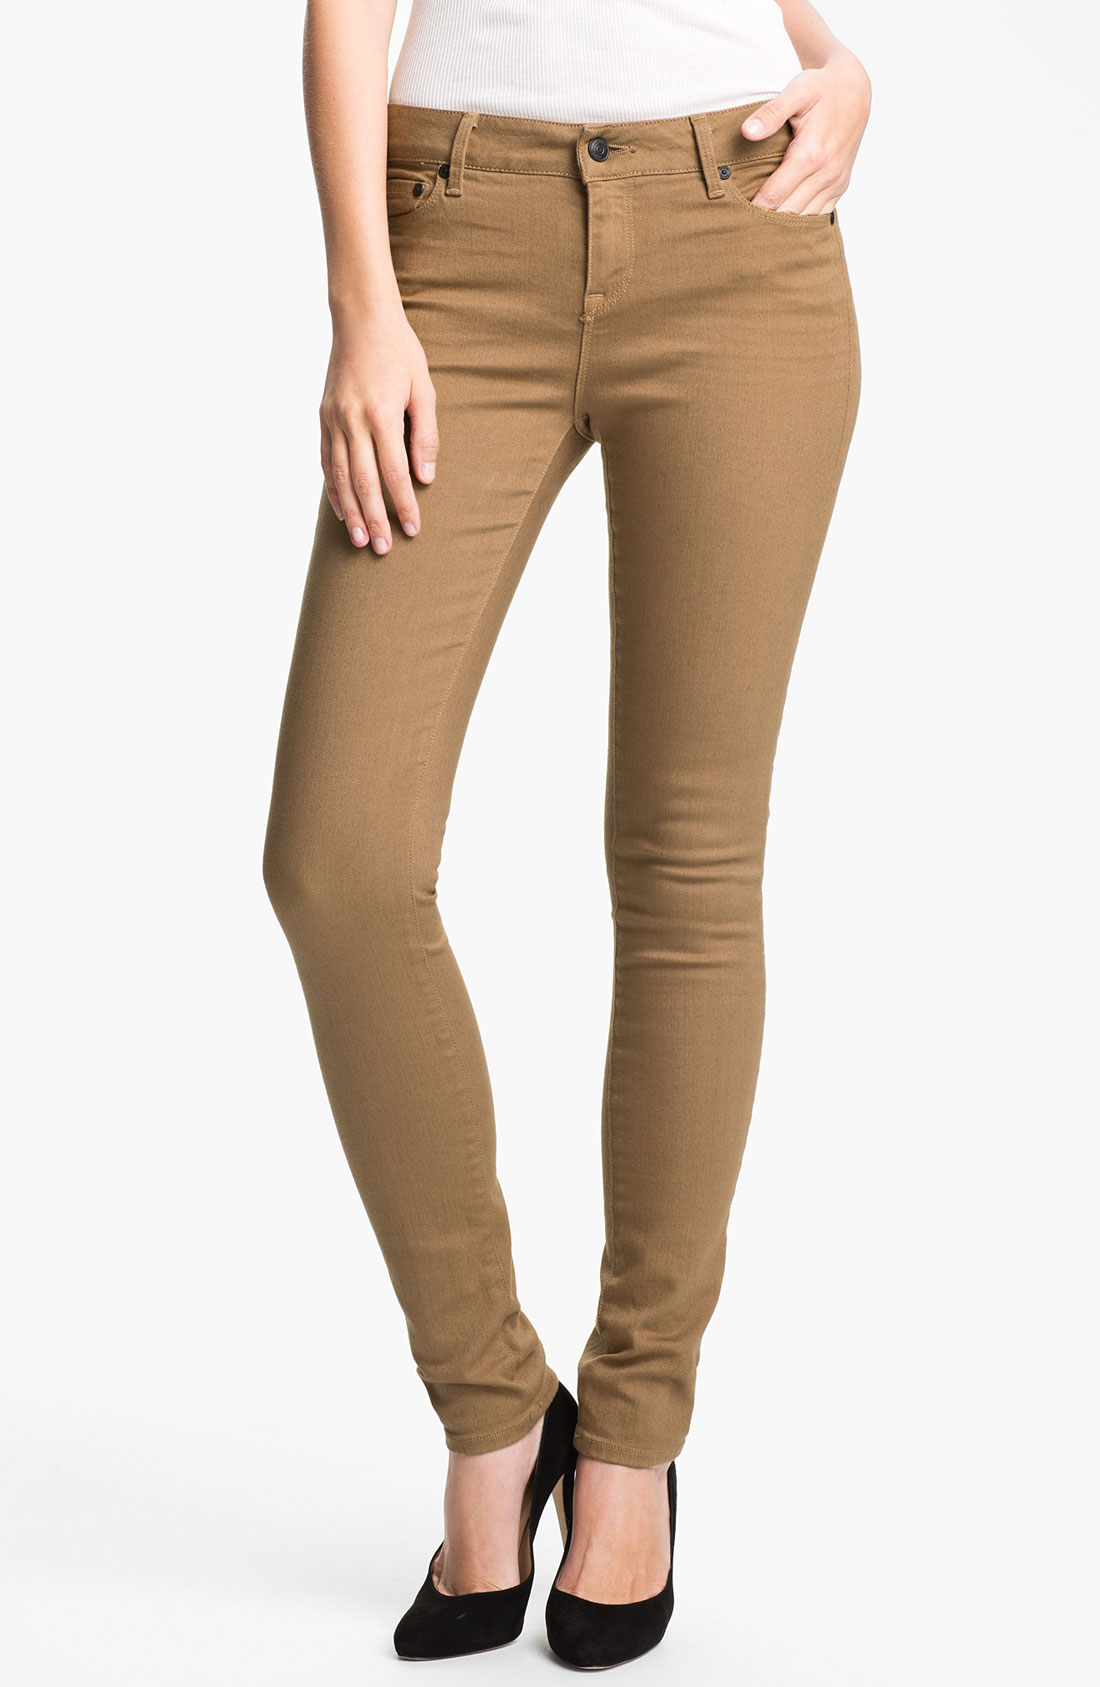 Khaki Skinny Jeans For Women Photo Album - Kianes